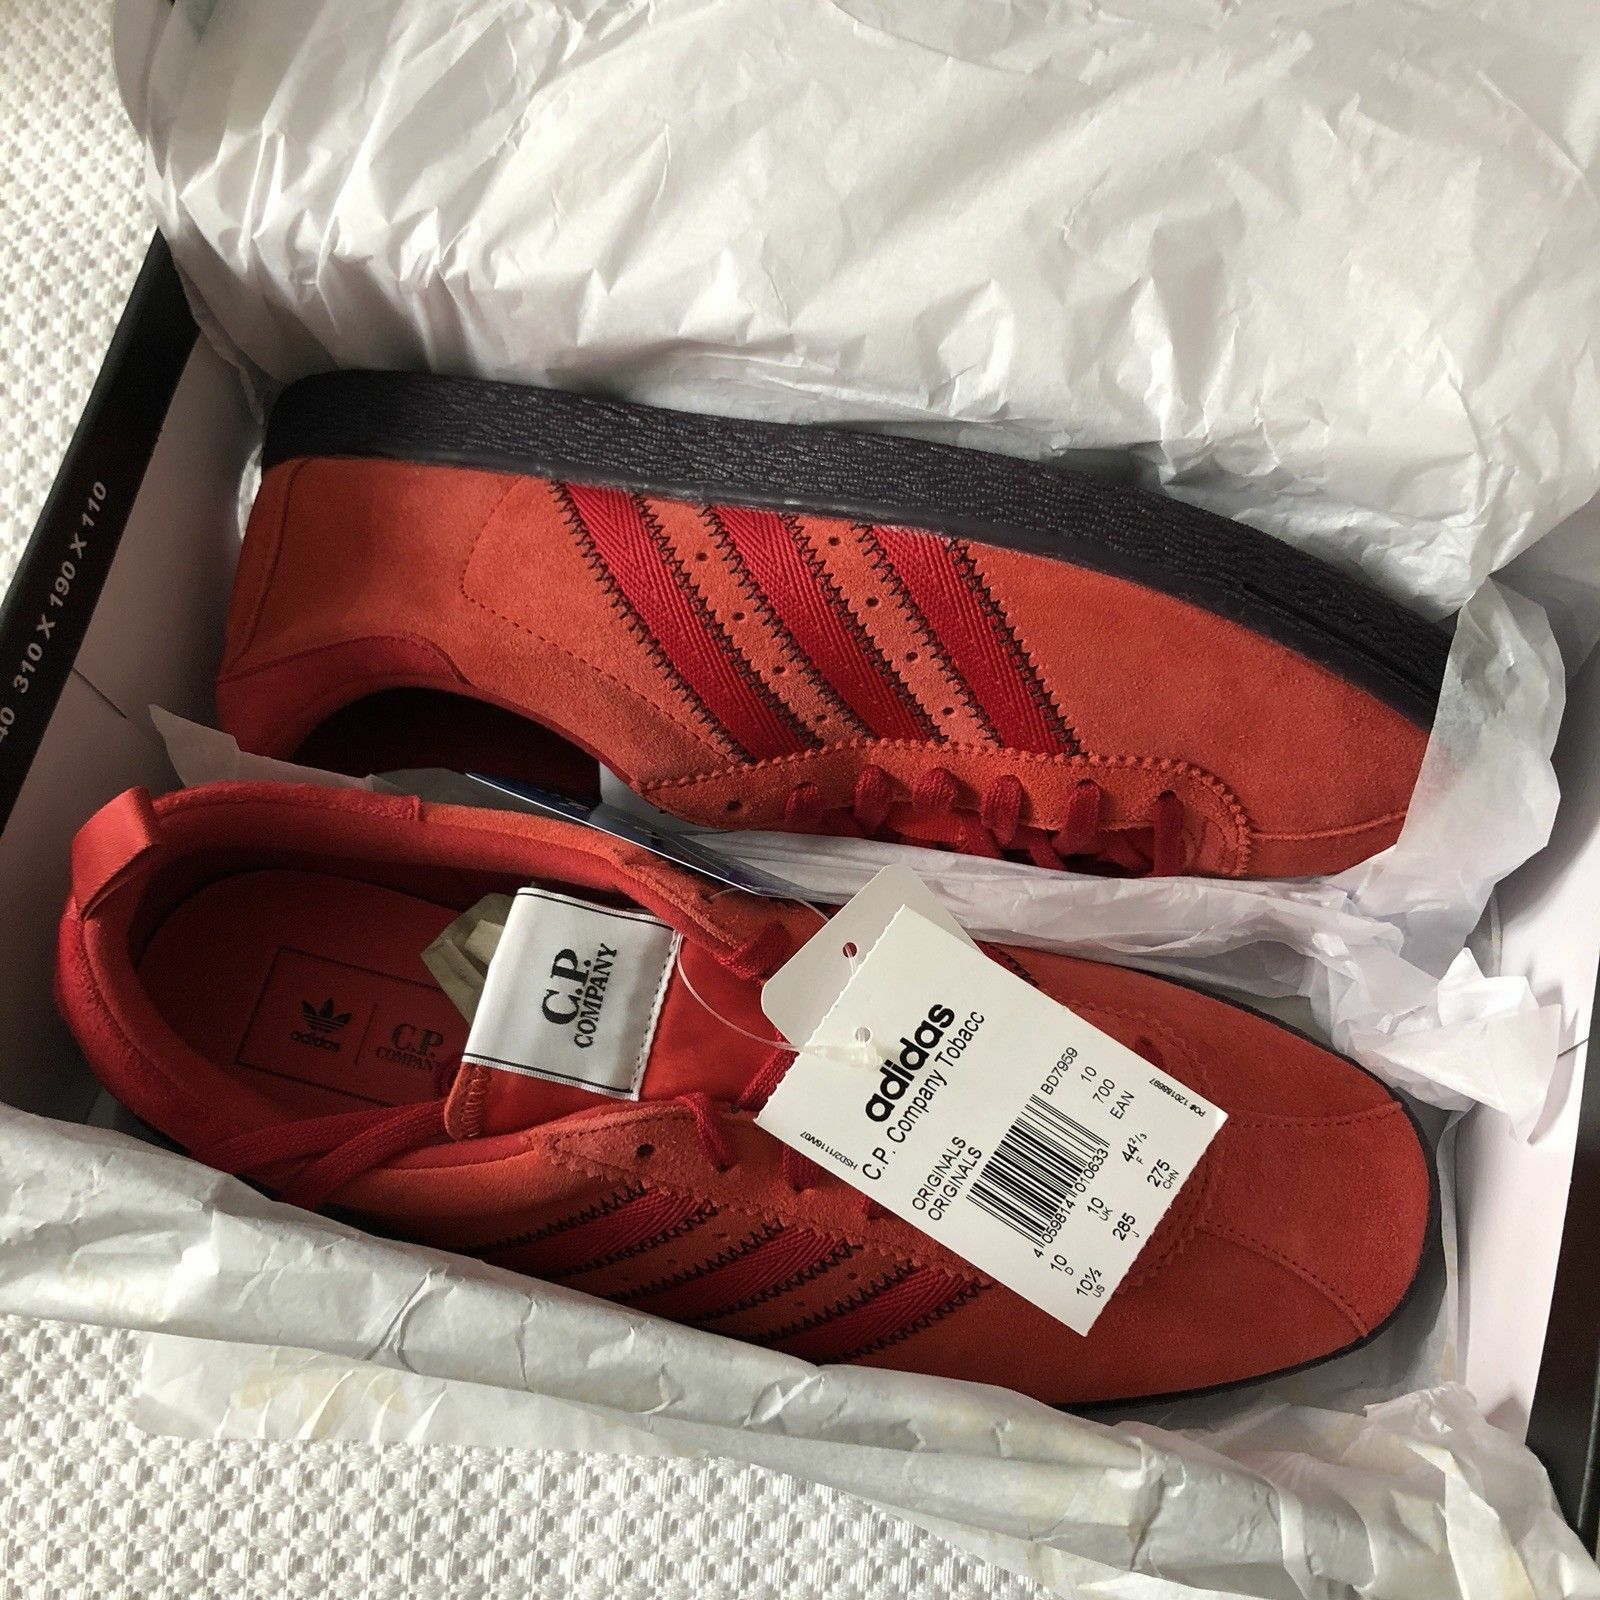 BRAND NEW ADIDAS ORIGINALS CP COMPANY TOBACCO rouge SUEDE TRAINERS BD7959 -10